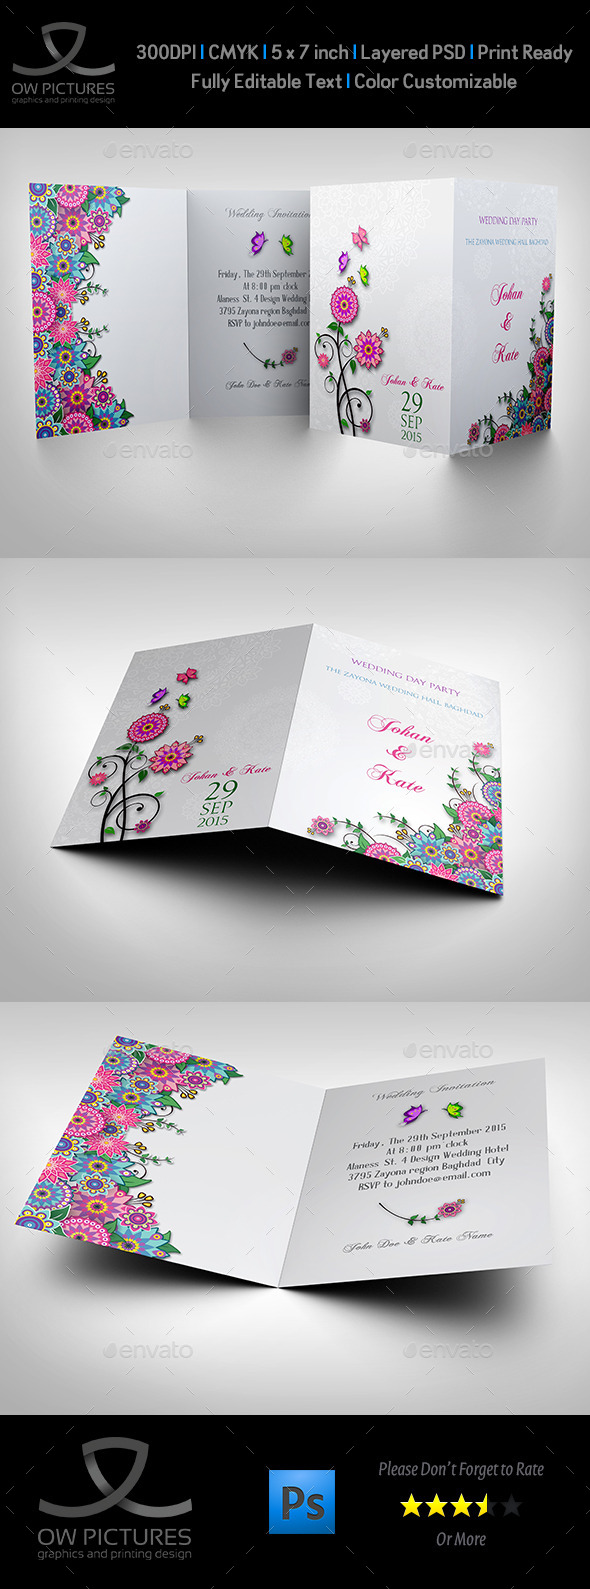 Wedding Invitation Card Template Vol.11 - Weddings Cards & Invites